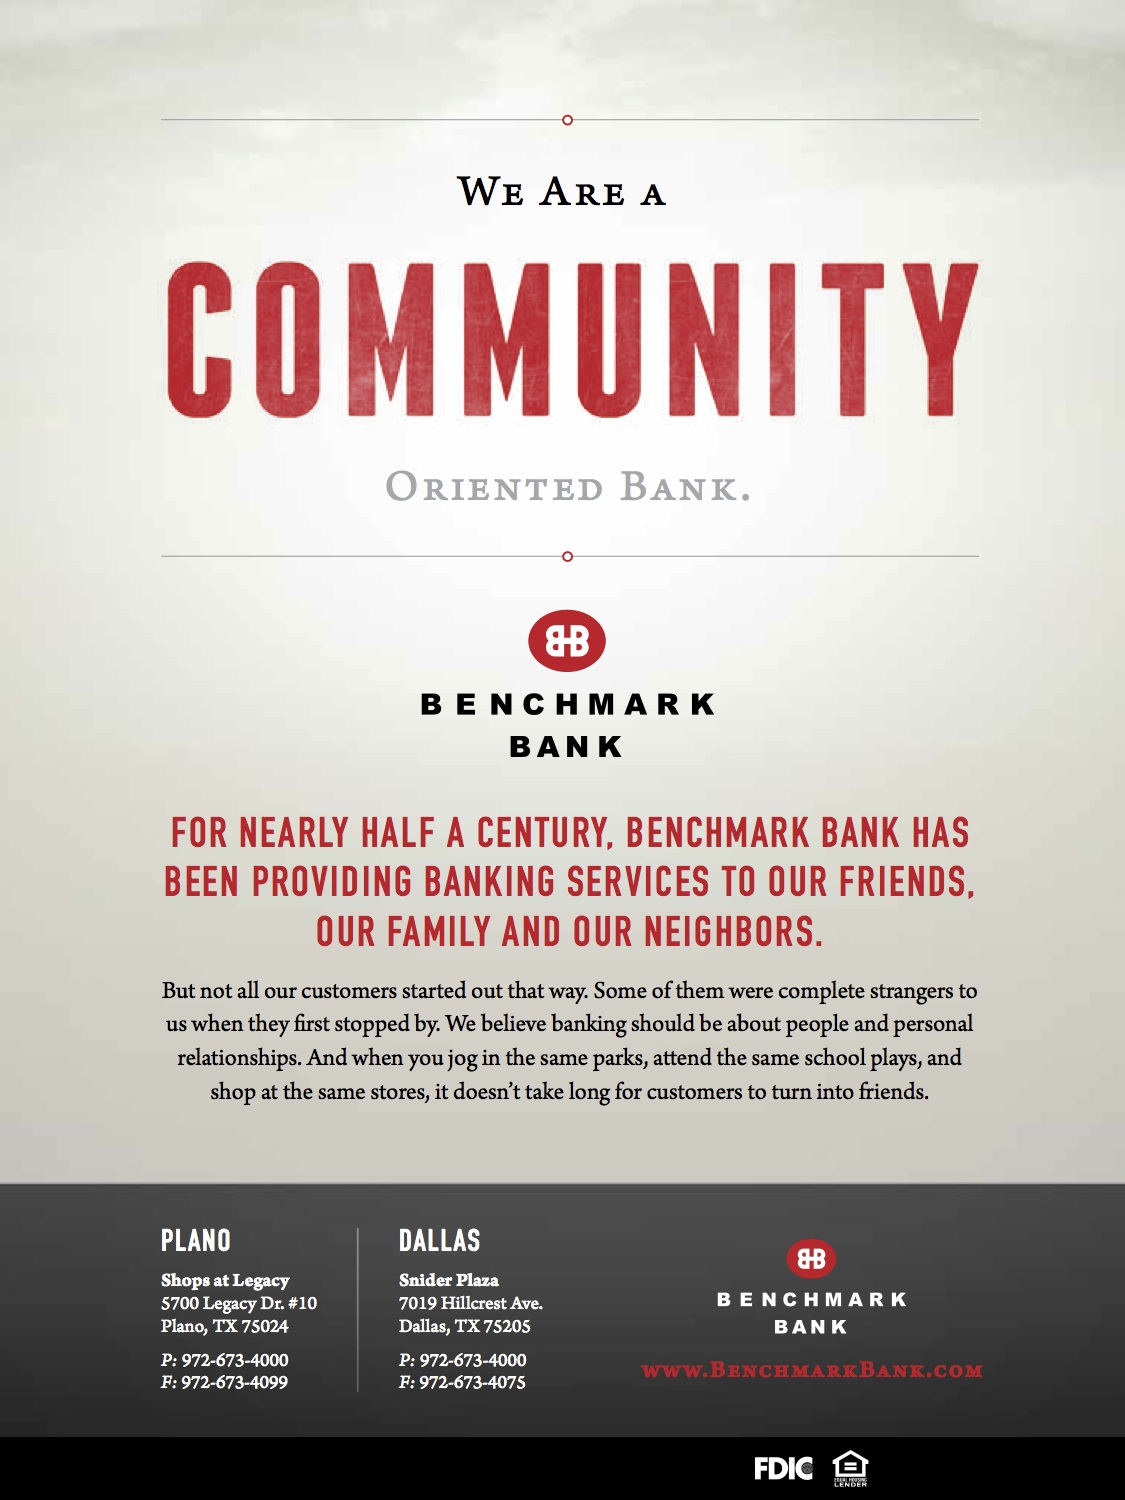 Benchmark Bank Matt Fry Digital Marketing And Design